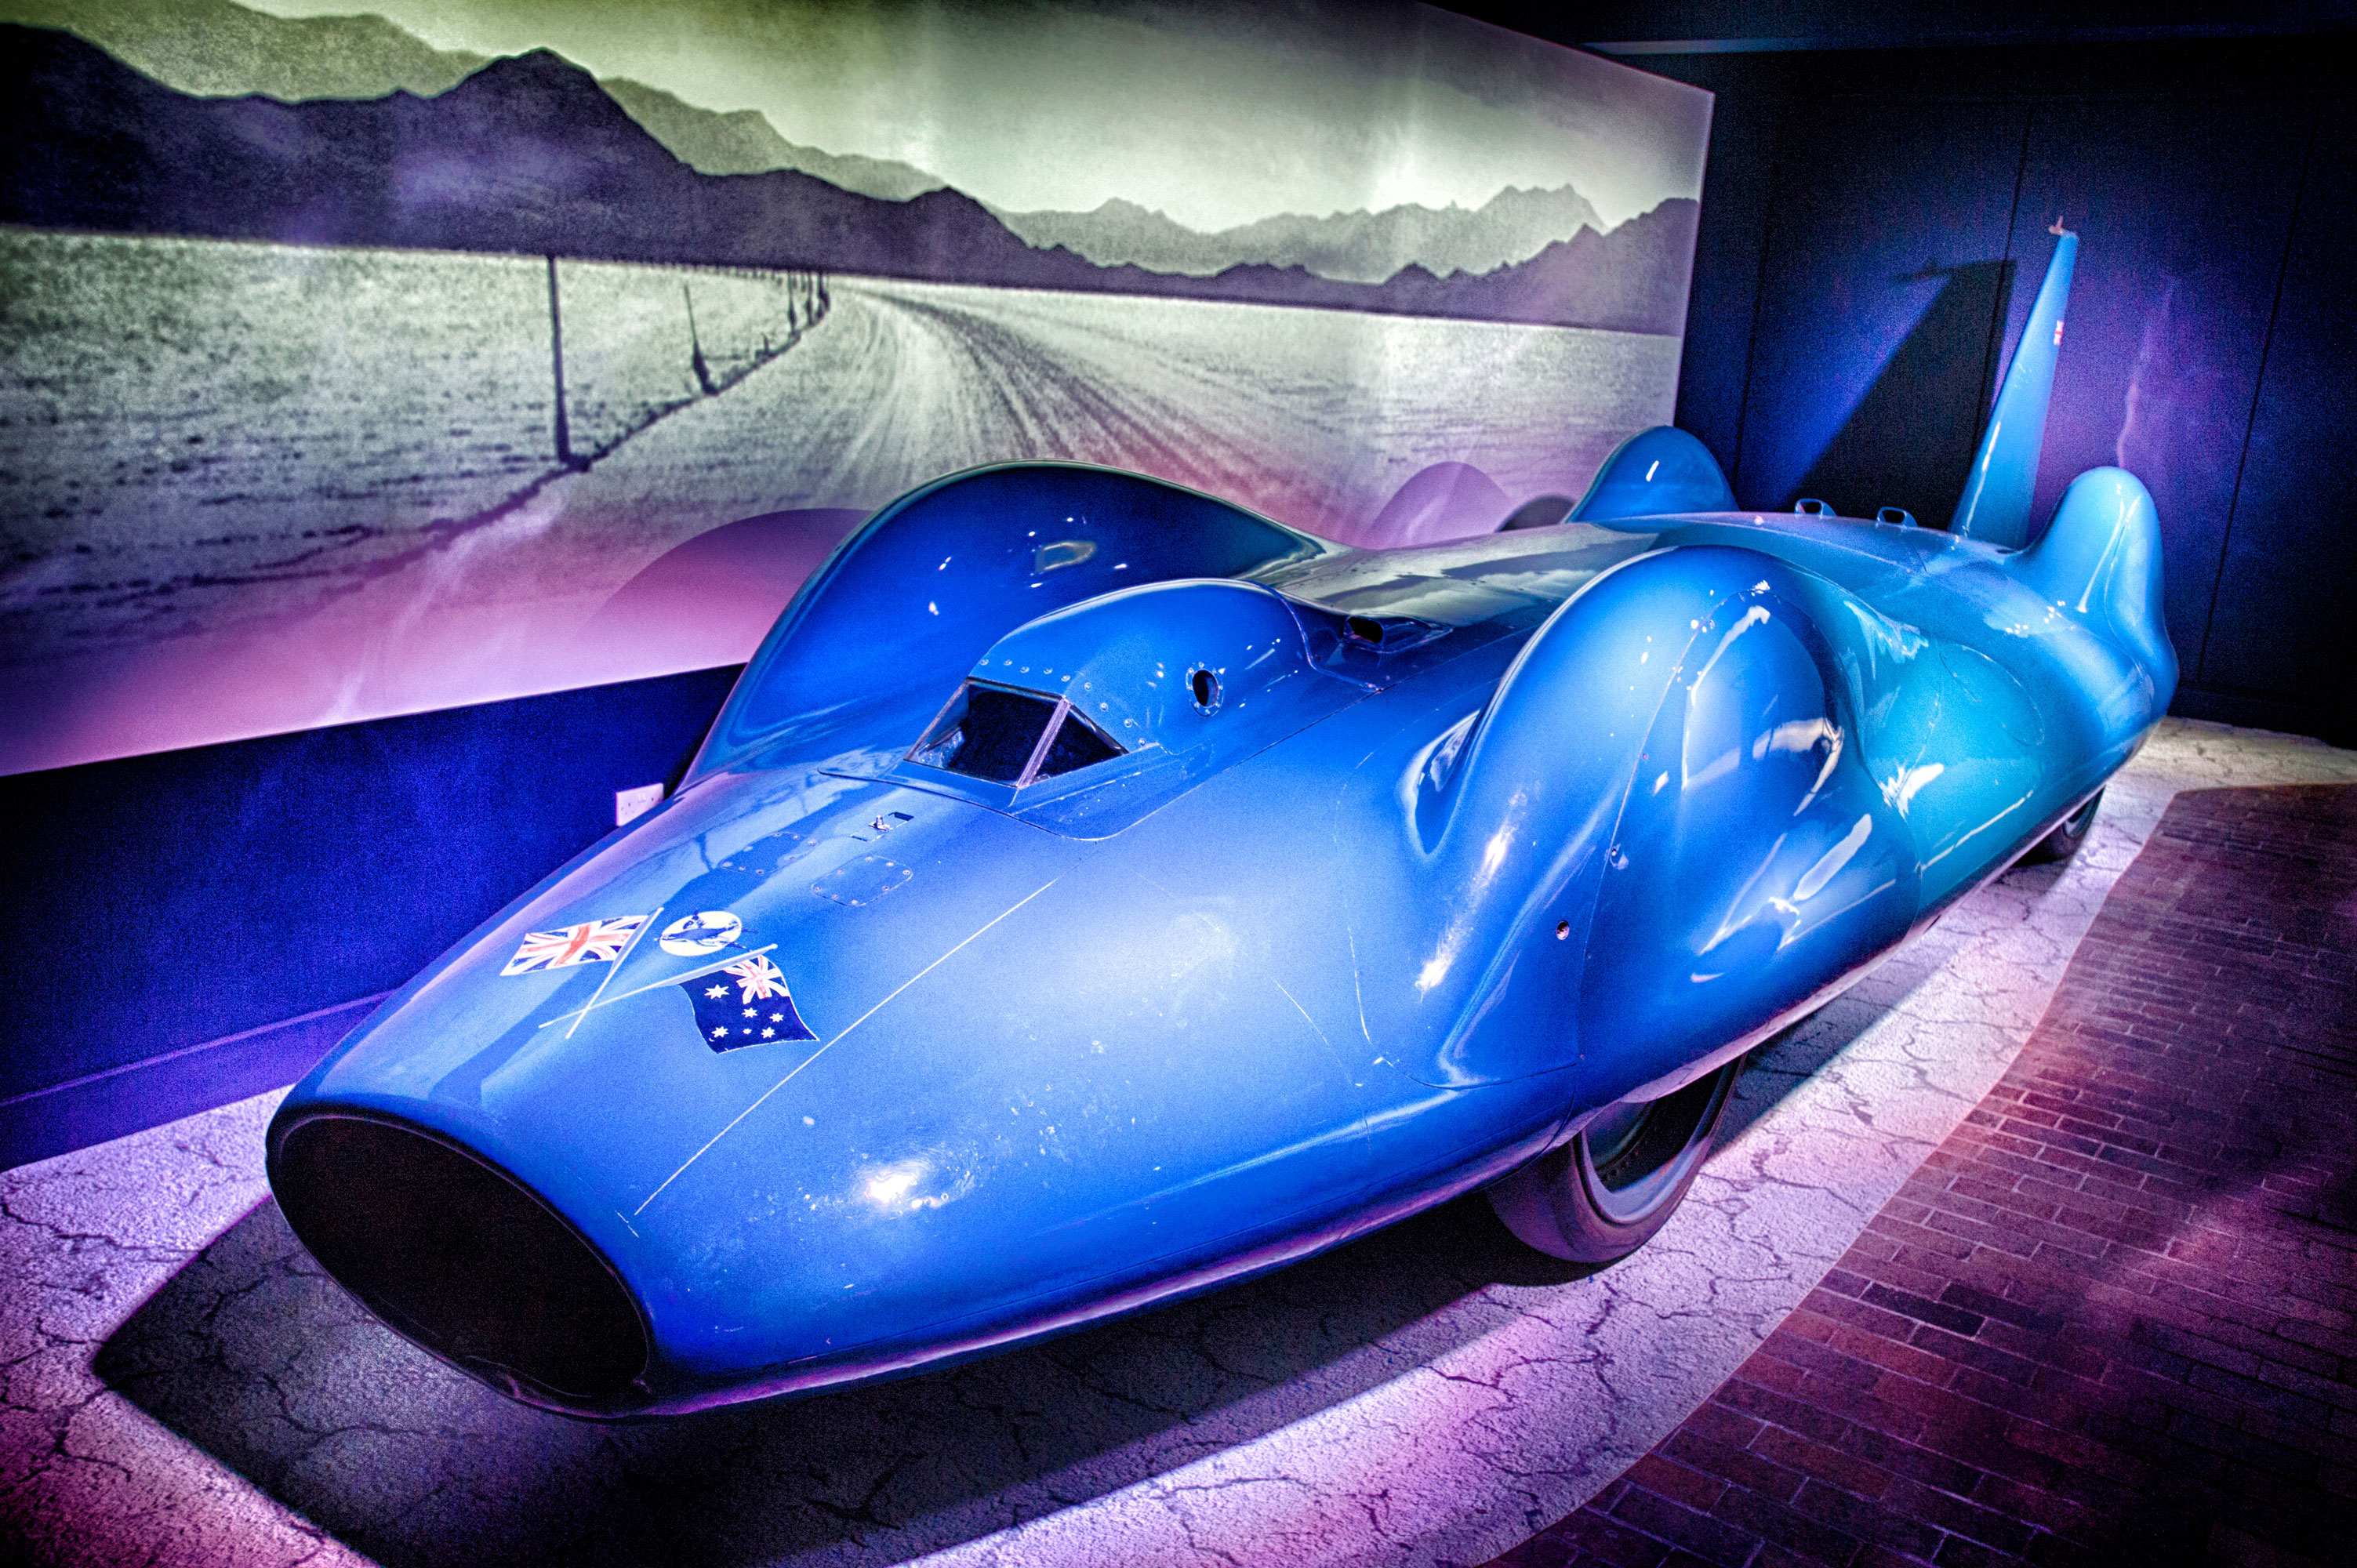 Bluebird CN7 on display in the National Motor Museum